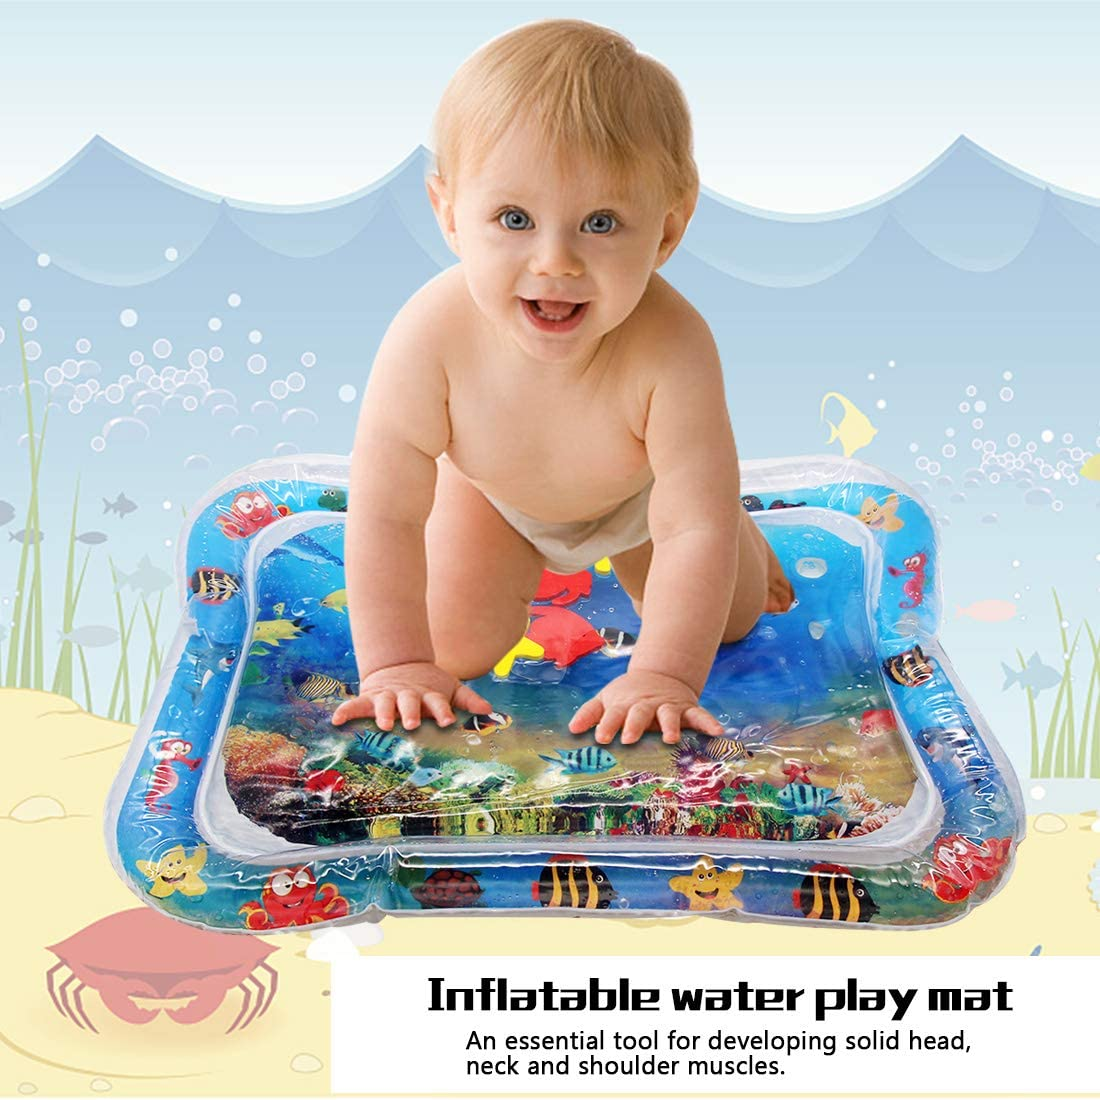 Together-life Inflatable Water Play Mat Activity Play Center Tummy Time Playmat for Newborns Infants Children Stimulation Growth